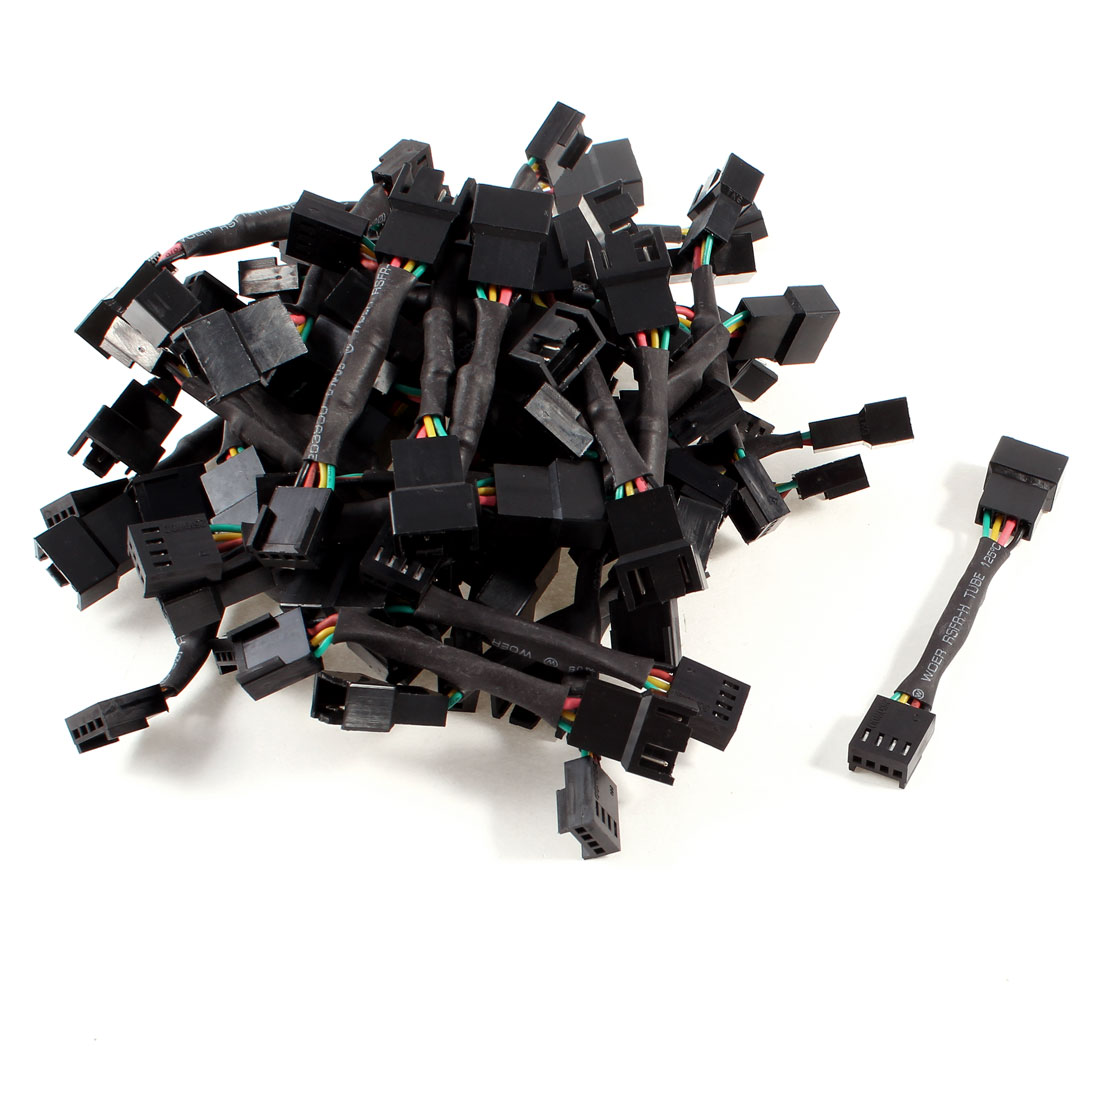 50 Pcs 4 Pin PWM Connector Computer Case Fan Power Extension Adapter Cable